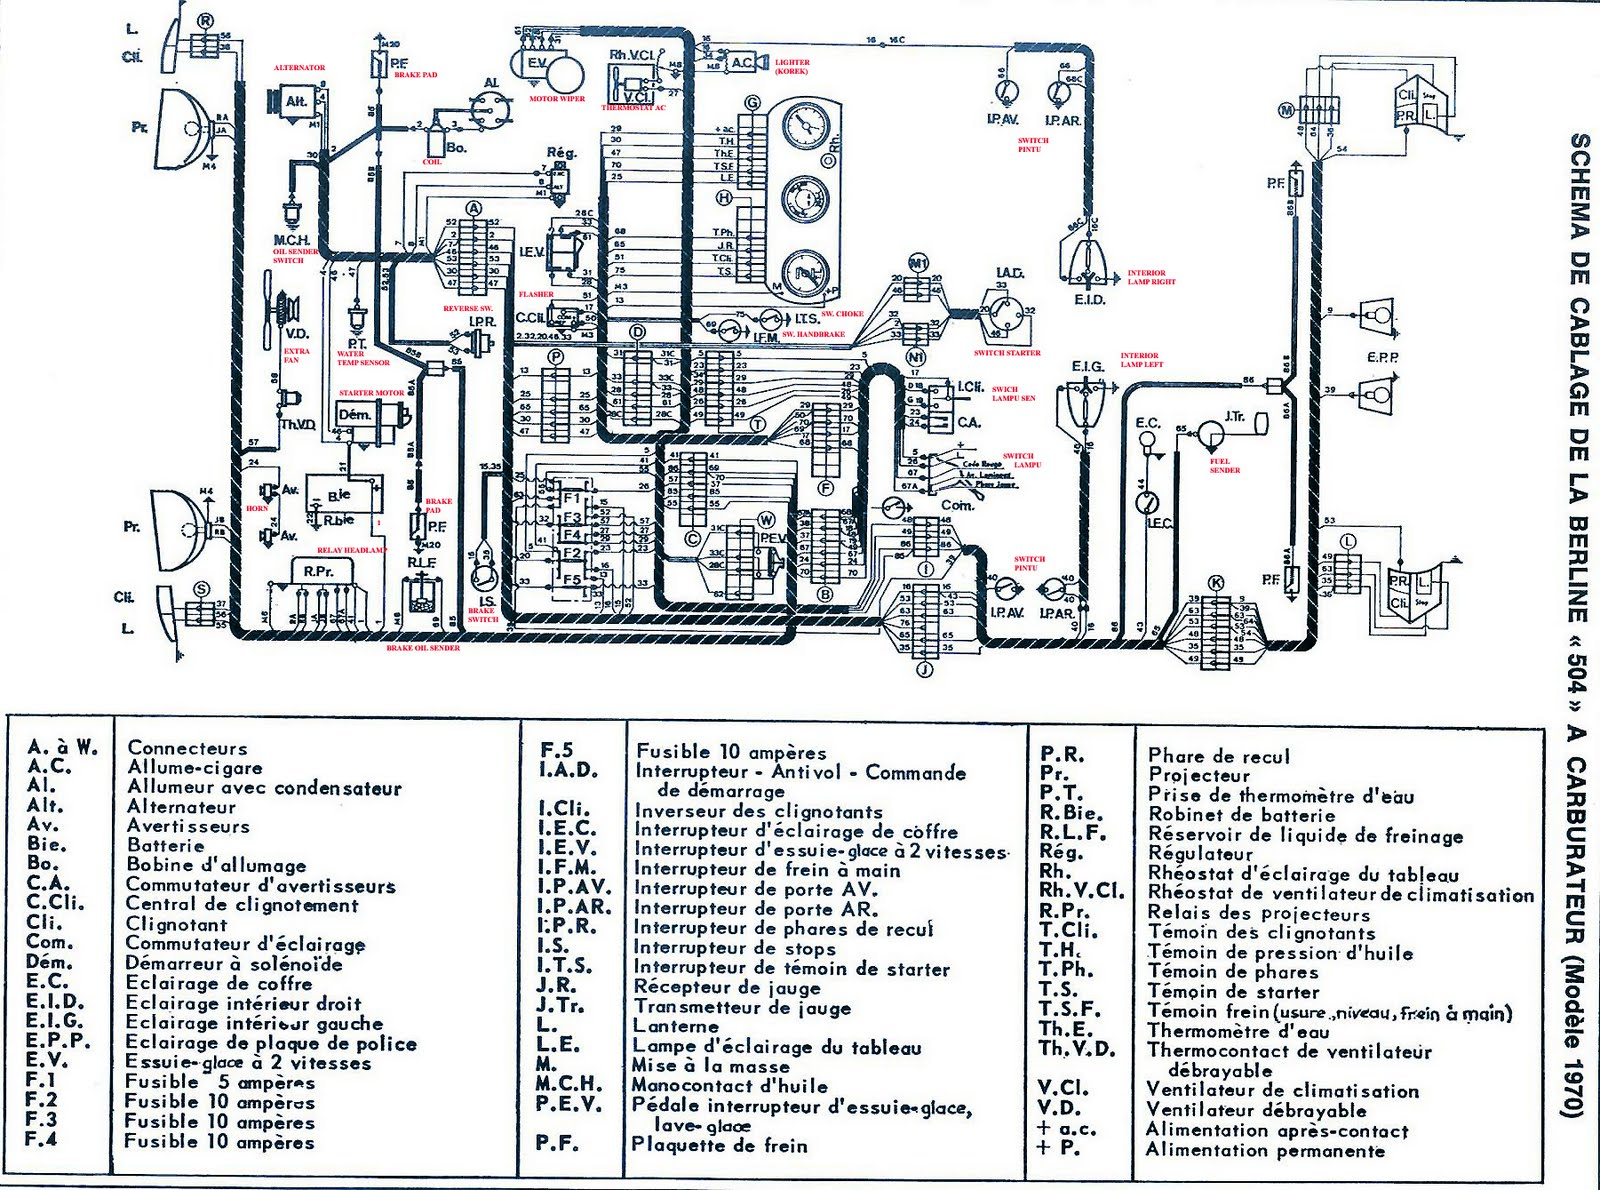 small resolution of peugeot 505 wiring diagram wiring diagram expertpeugeot 505 wiring diagram wiring diagram for you peugeot 505